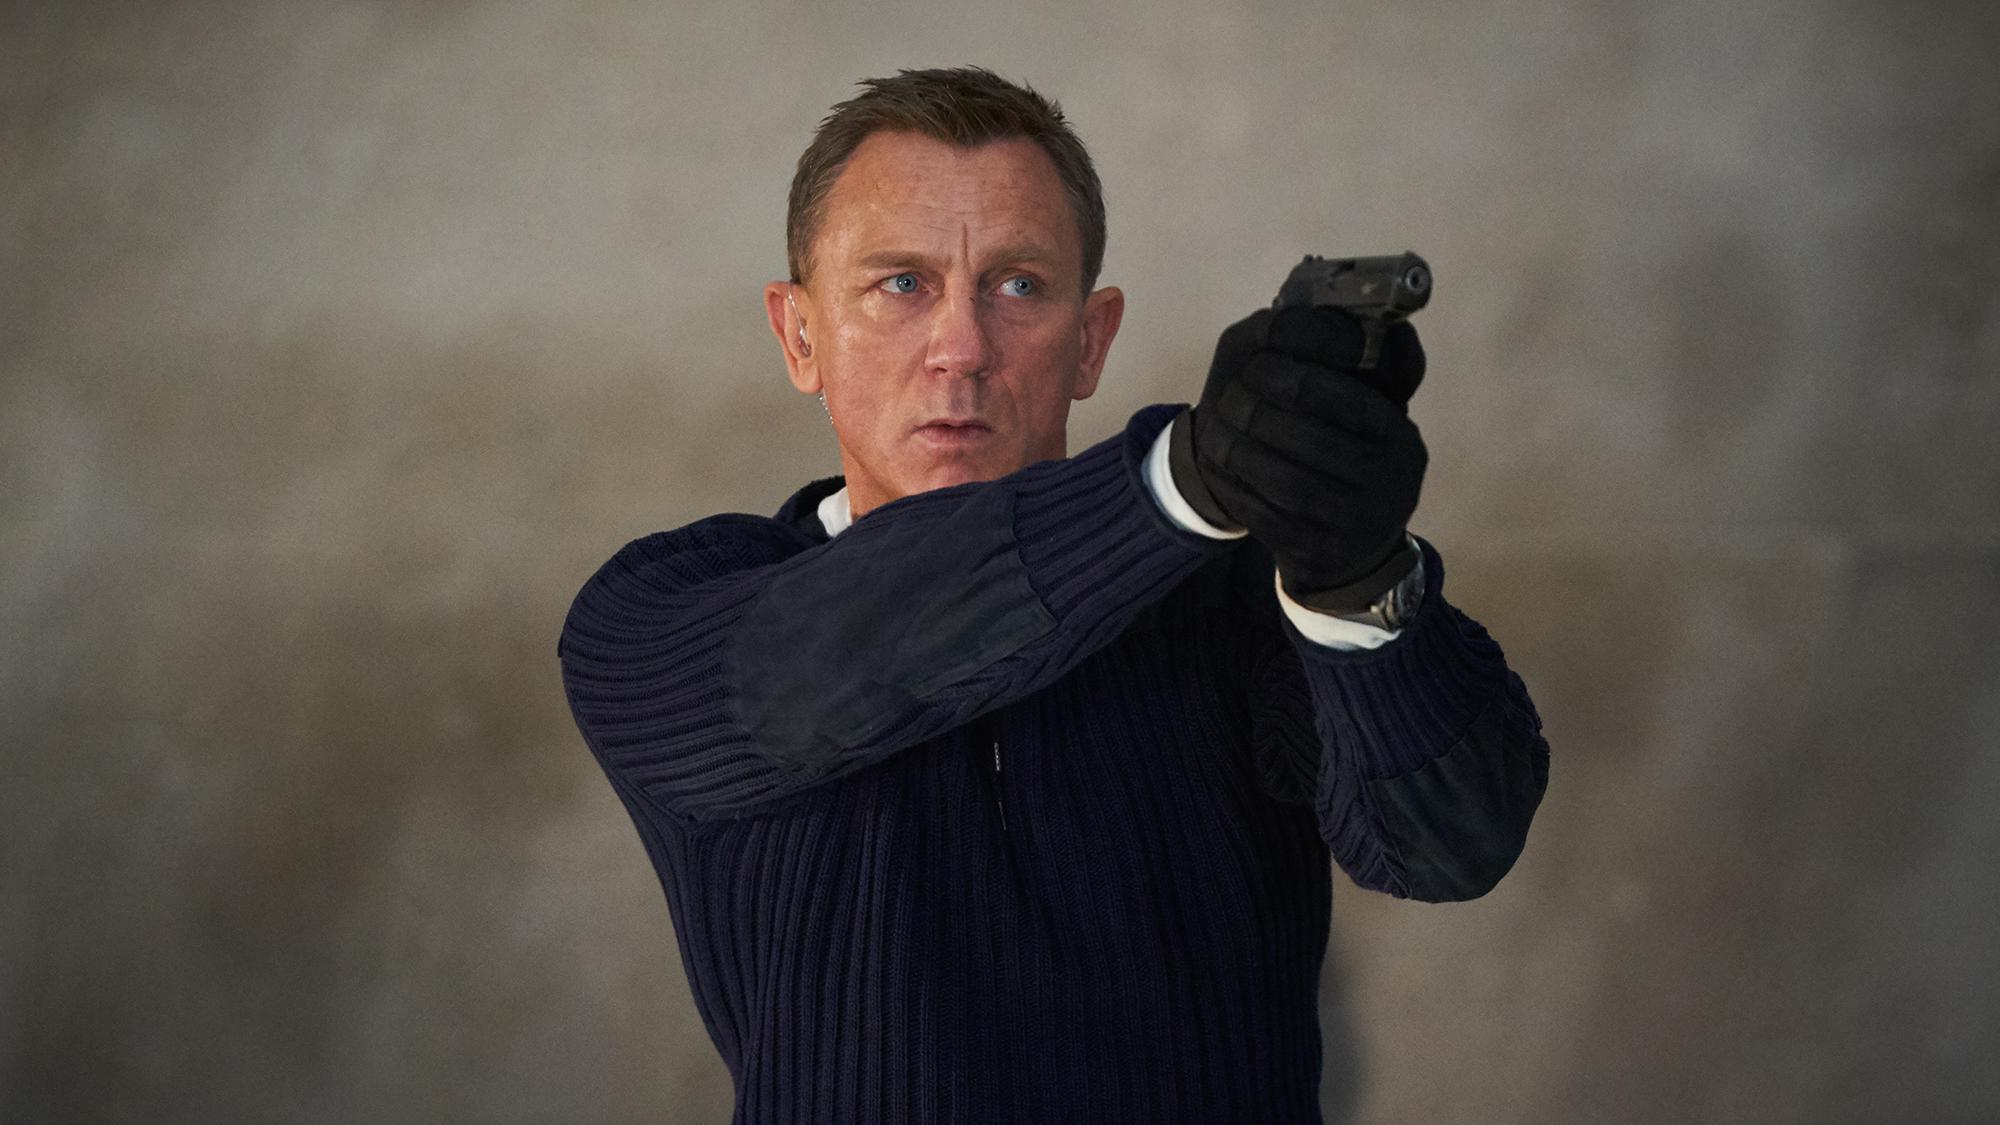 Terminally Ill James Bond Fan's Hope to Preview 'No Time to Die' Before He Passes Goes Viral